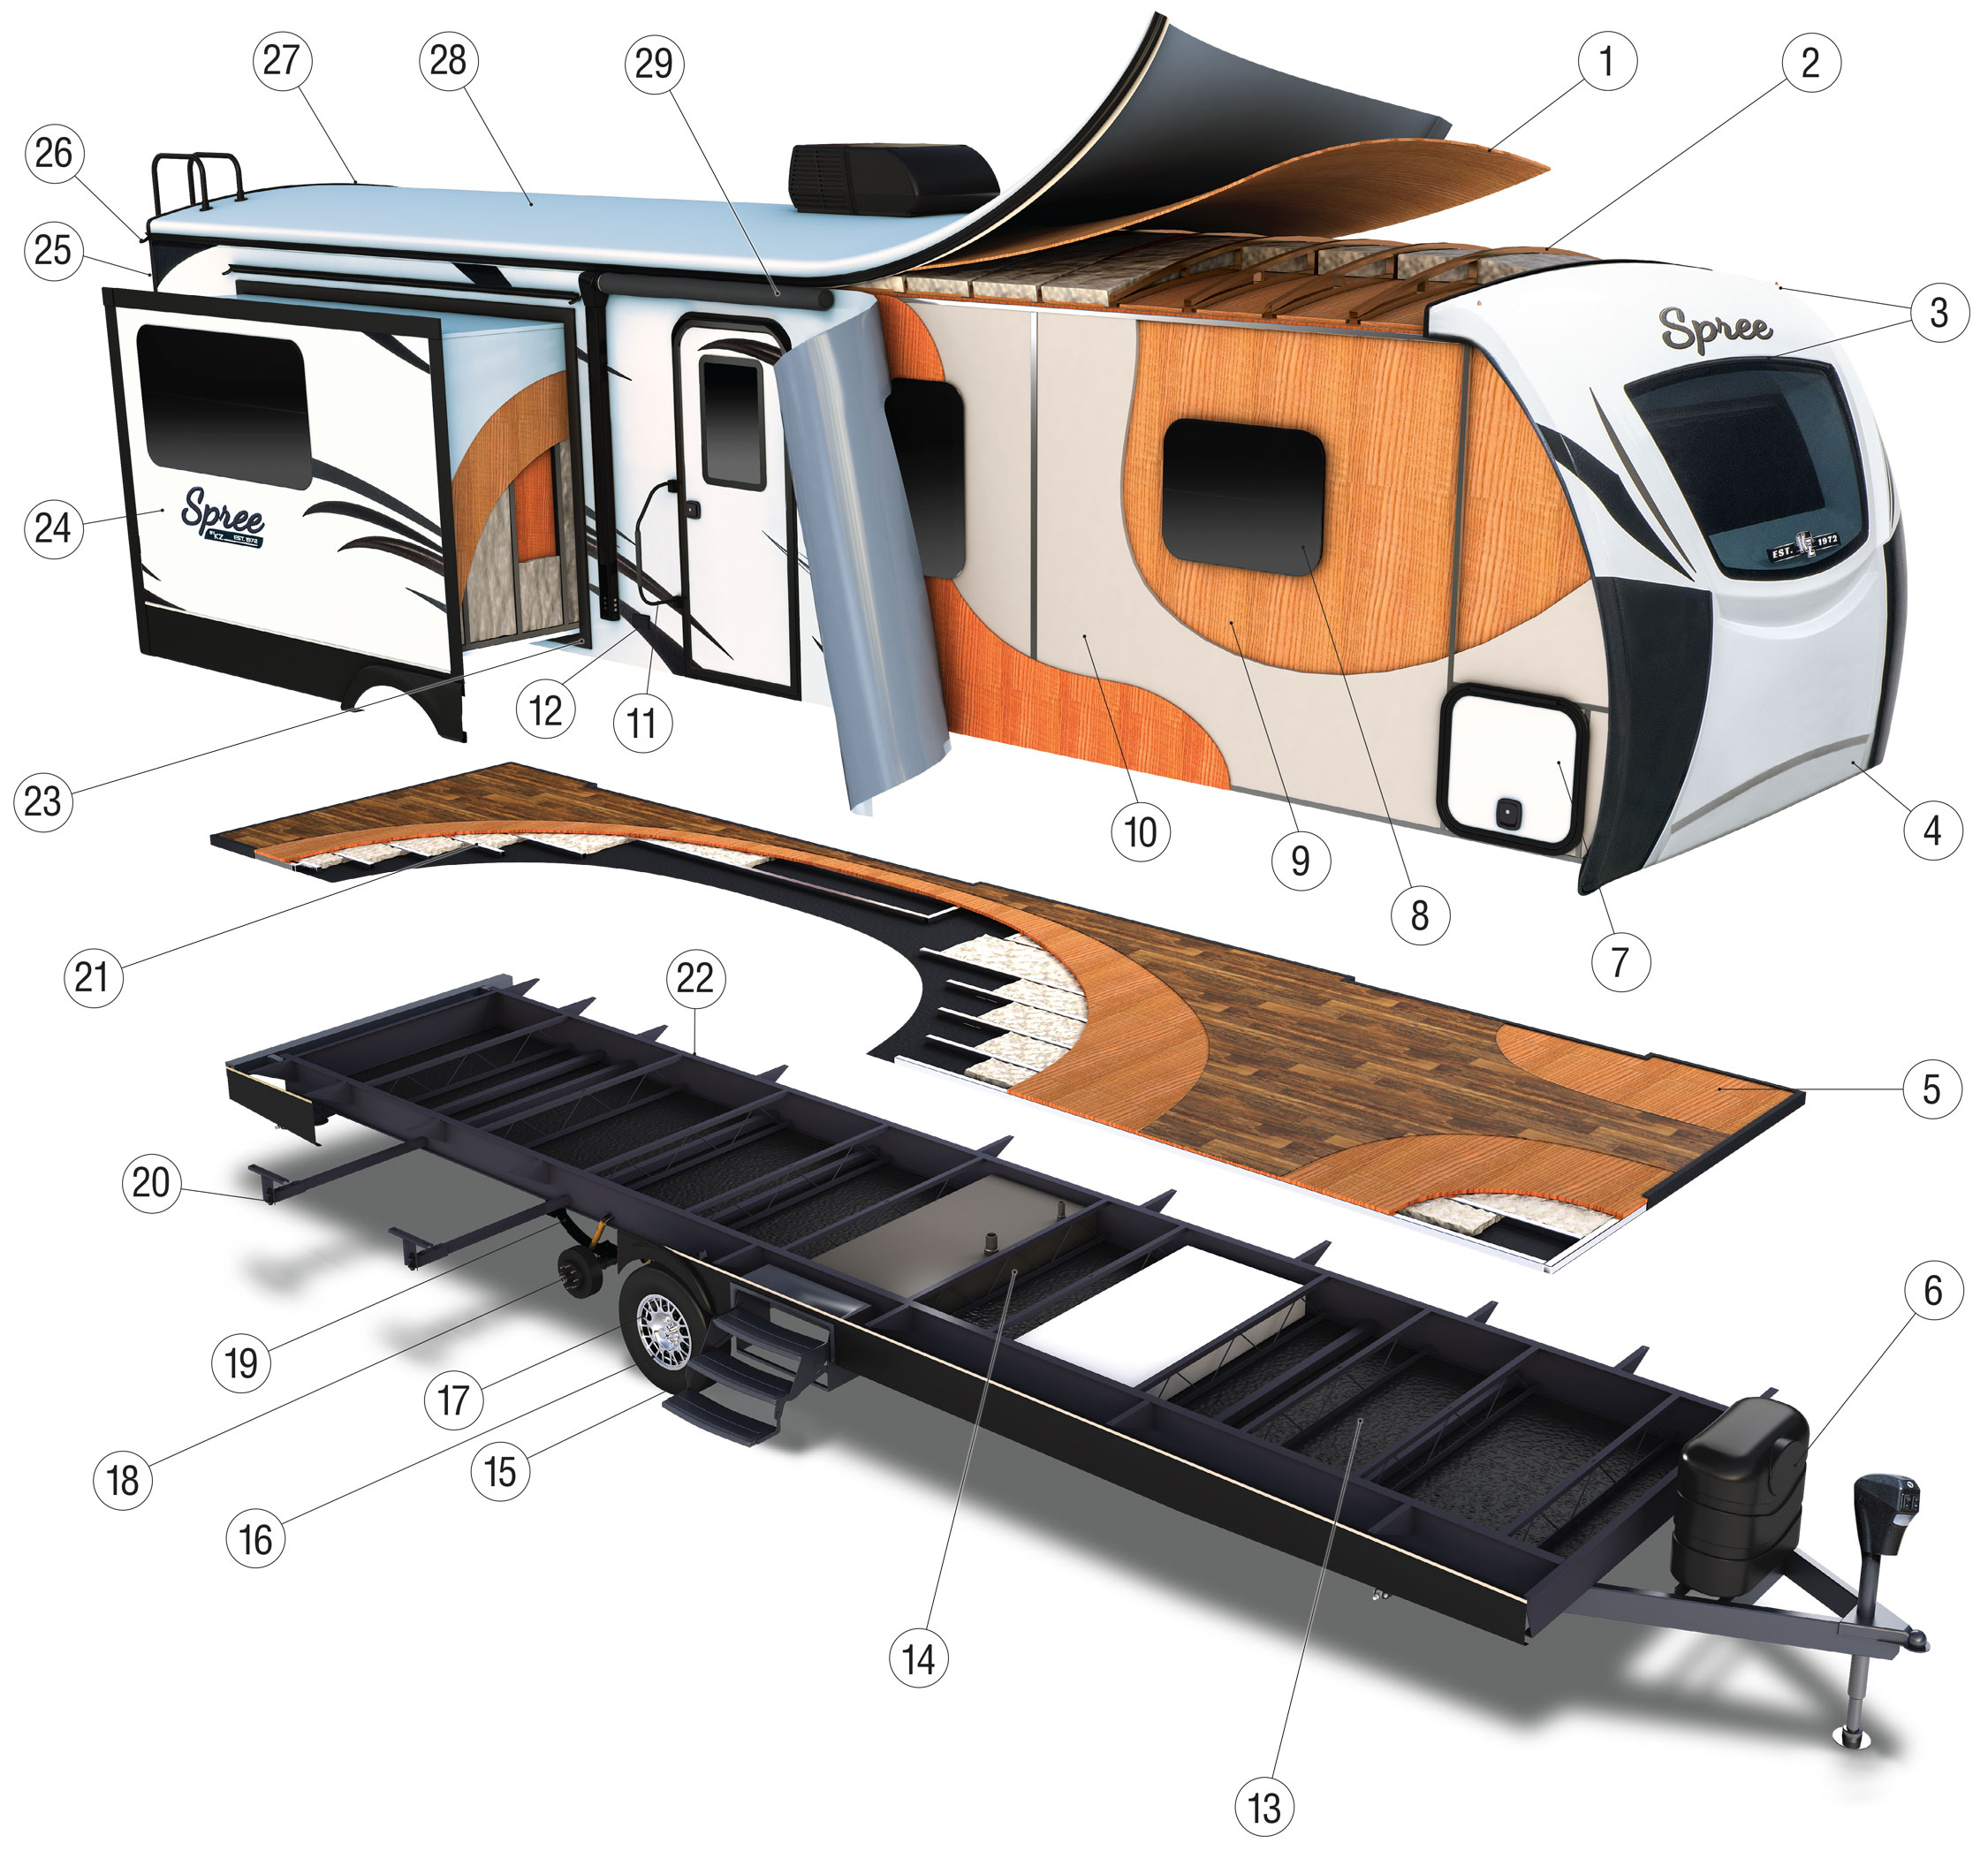 2018 KZ RV Spree Travel Trailer Cutaway spree luxury lightweight travel trailer features k z rv  at gsmx.co